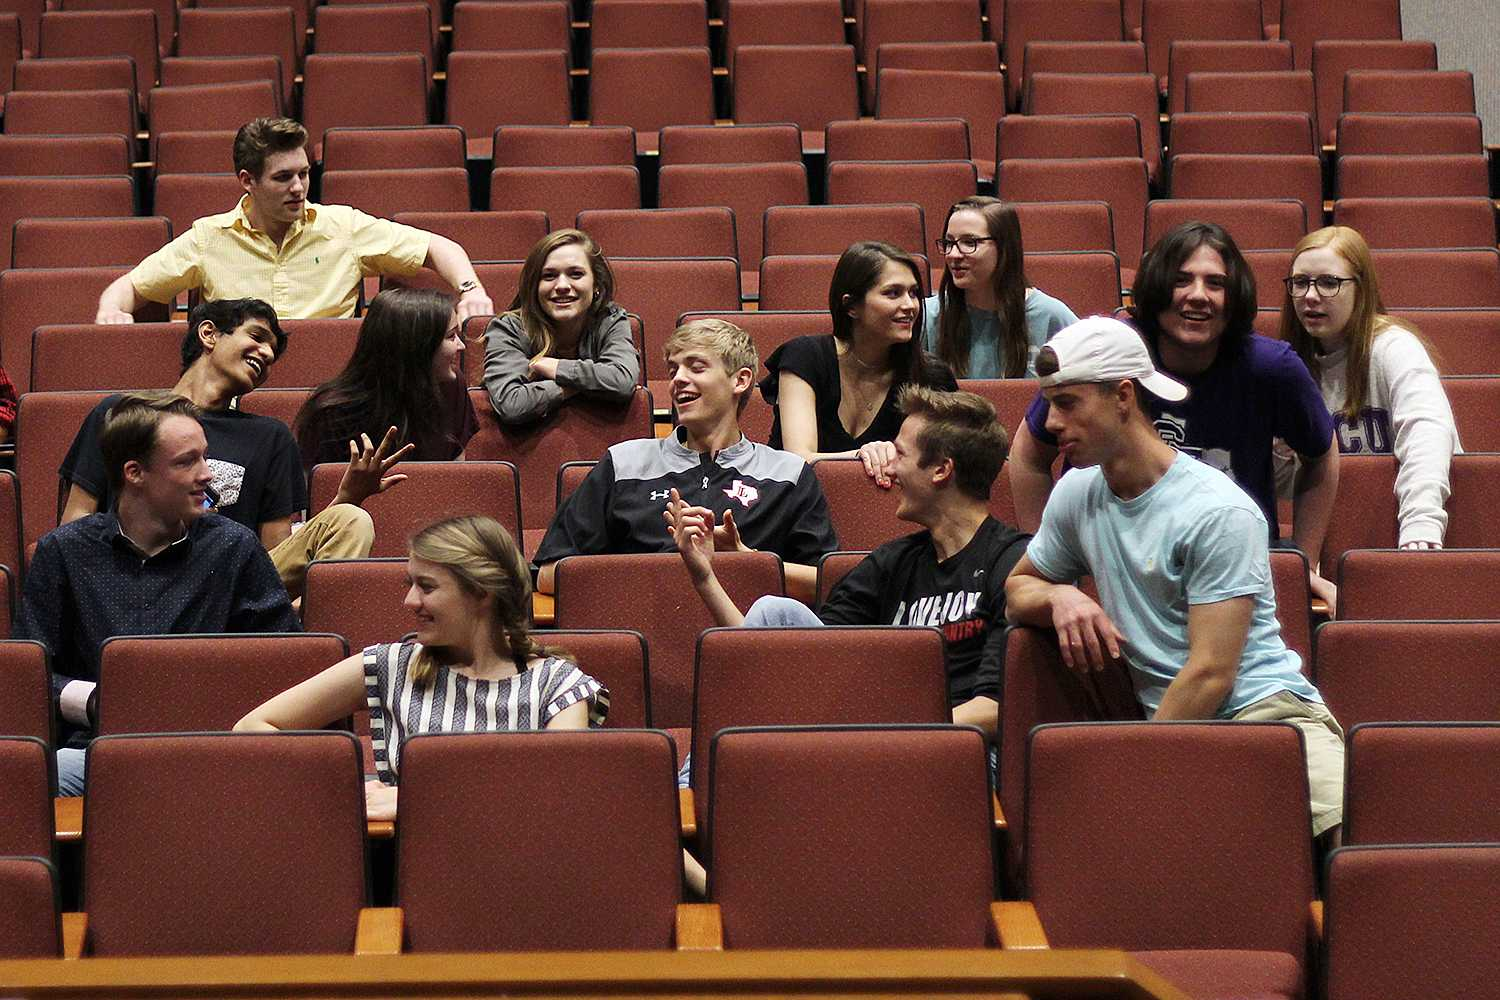 The a capella group currently has 18 members, four of which are juniors that are automatically admitted for next year's class. Freshmen, sophomores, and juniors are all allowed to audition.